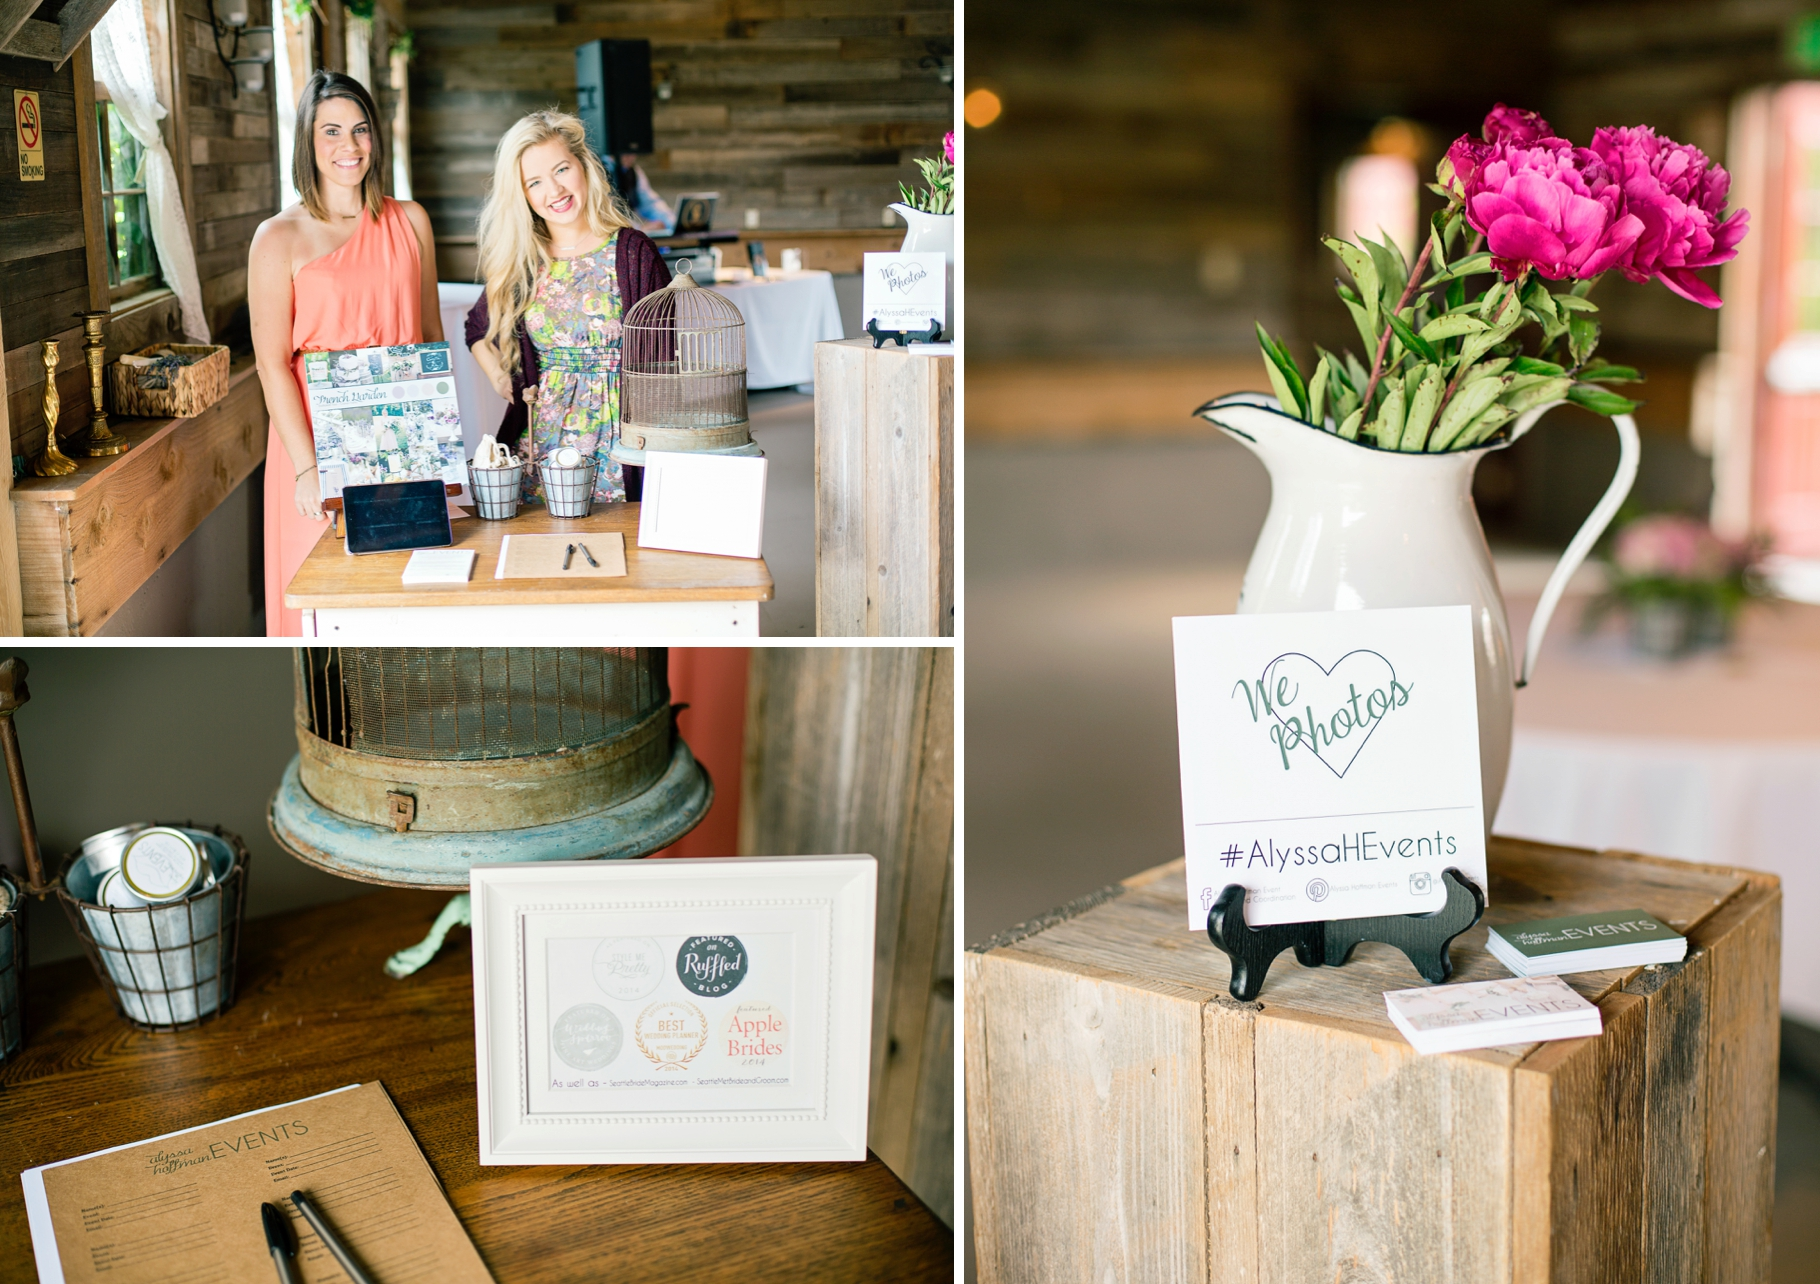 10-Alyssa-H-Events-Craven-Farm-Countryside-Garden-Ceremony-Barn-Reception-Peonies-Florals-Lavendar-Countryside-Snohomish-Wedding-Tour-Seattle-Photographer-Photography-by-Betty-Elaine